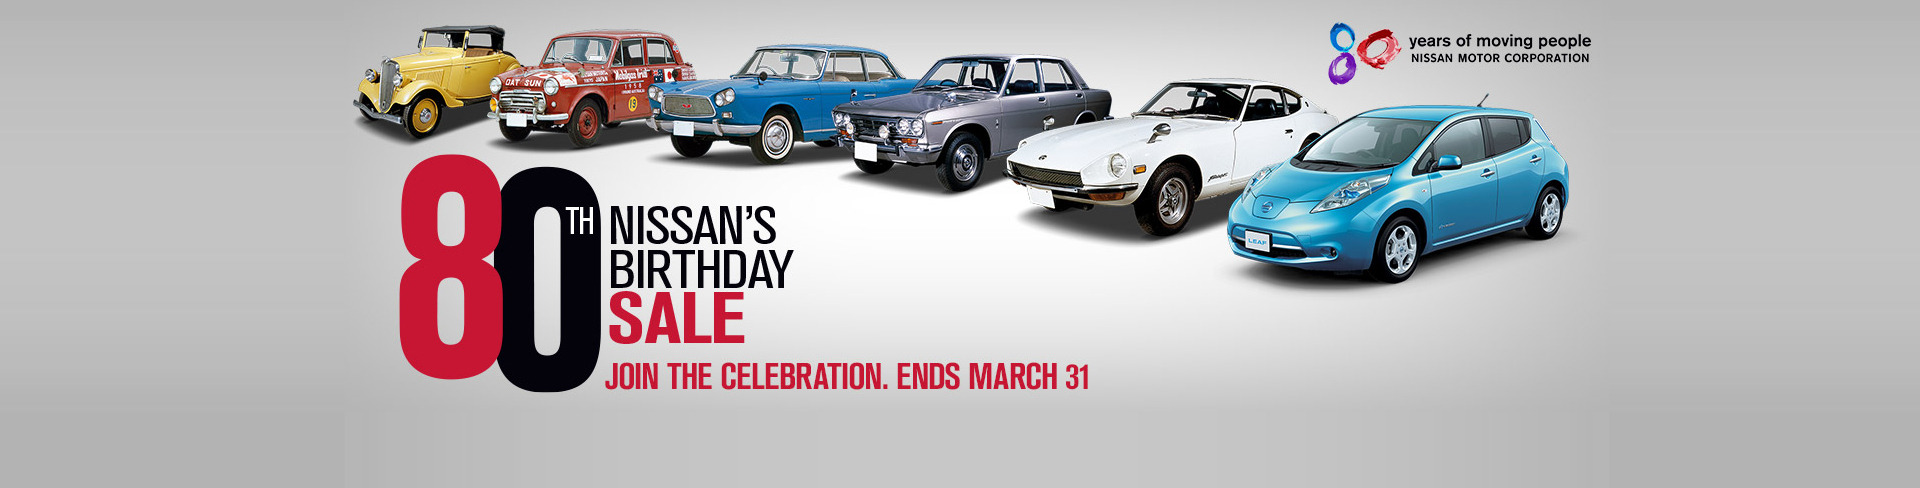 80th Nissan's Birthday Sale